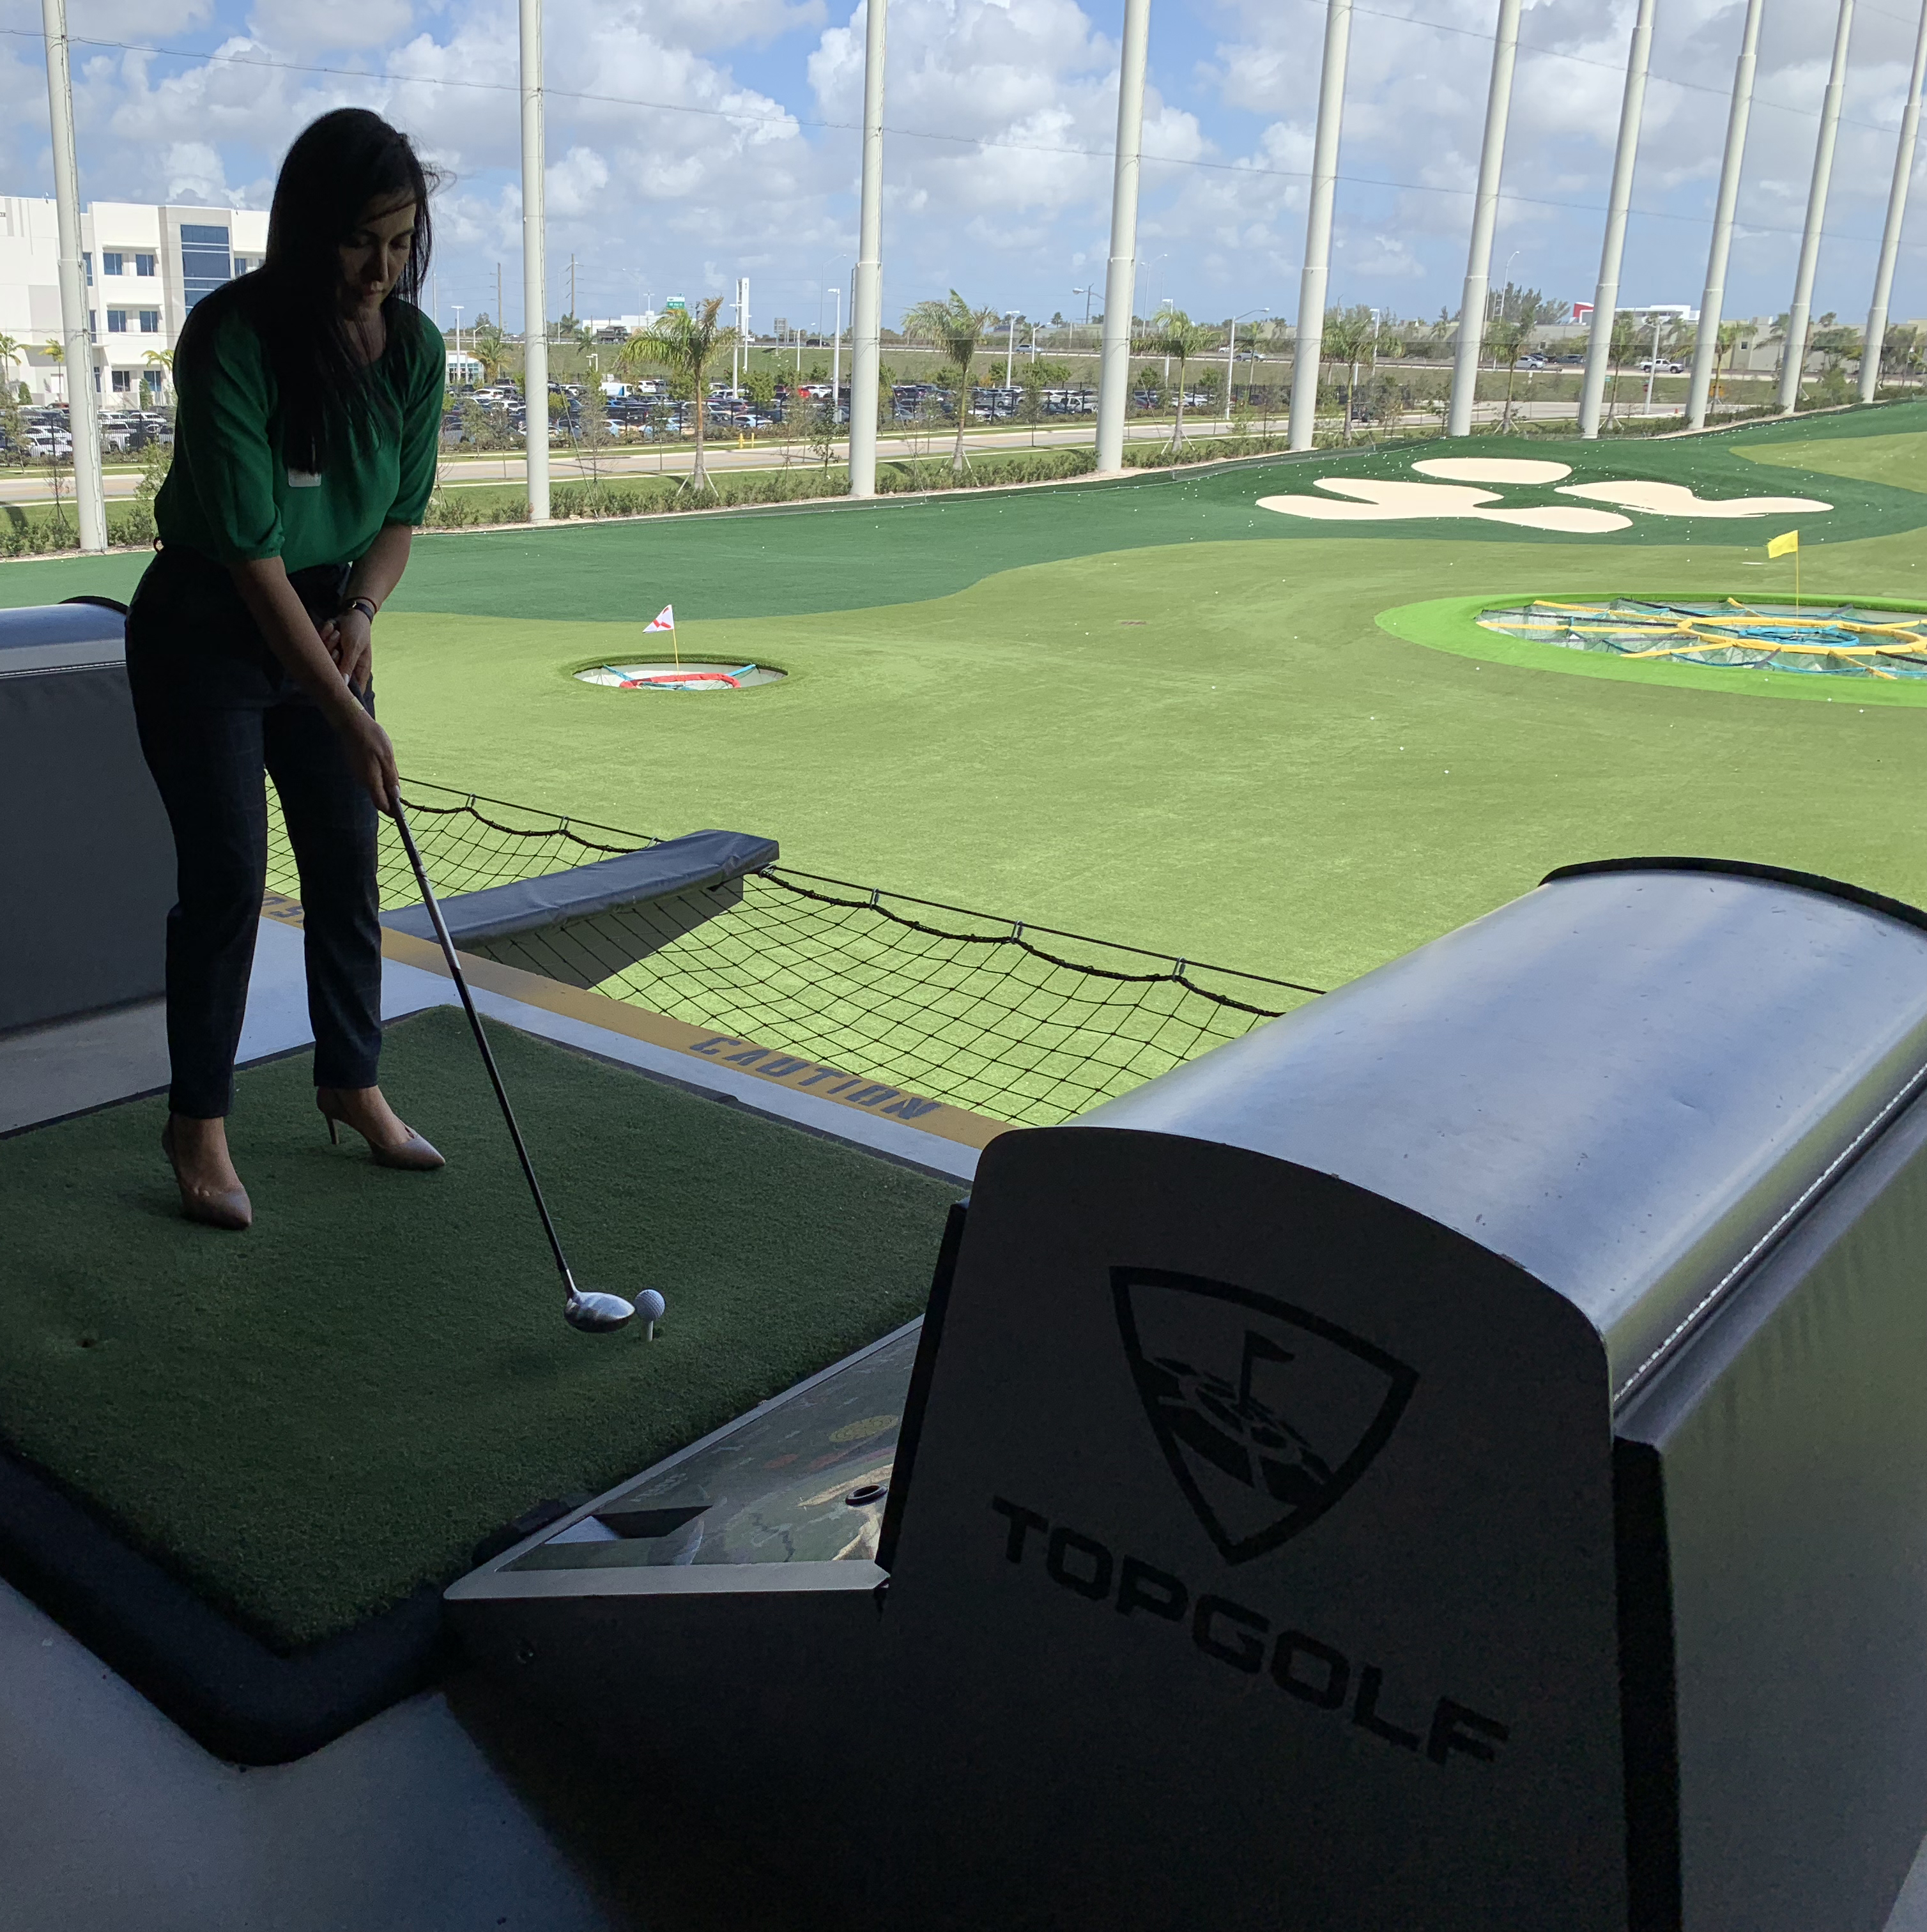 Doral Chamber of Commerce introduces a member playing golf, having fun at Topgolf Doral Networking Luncheon.